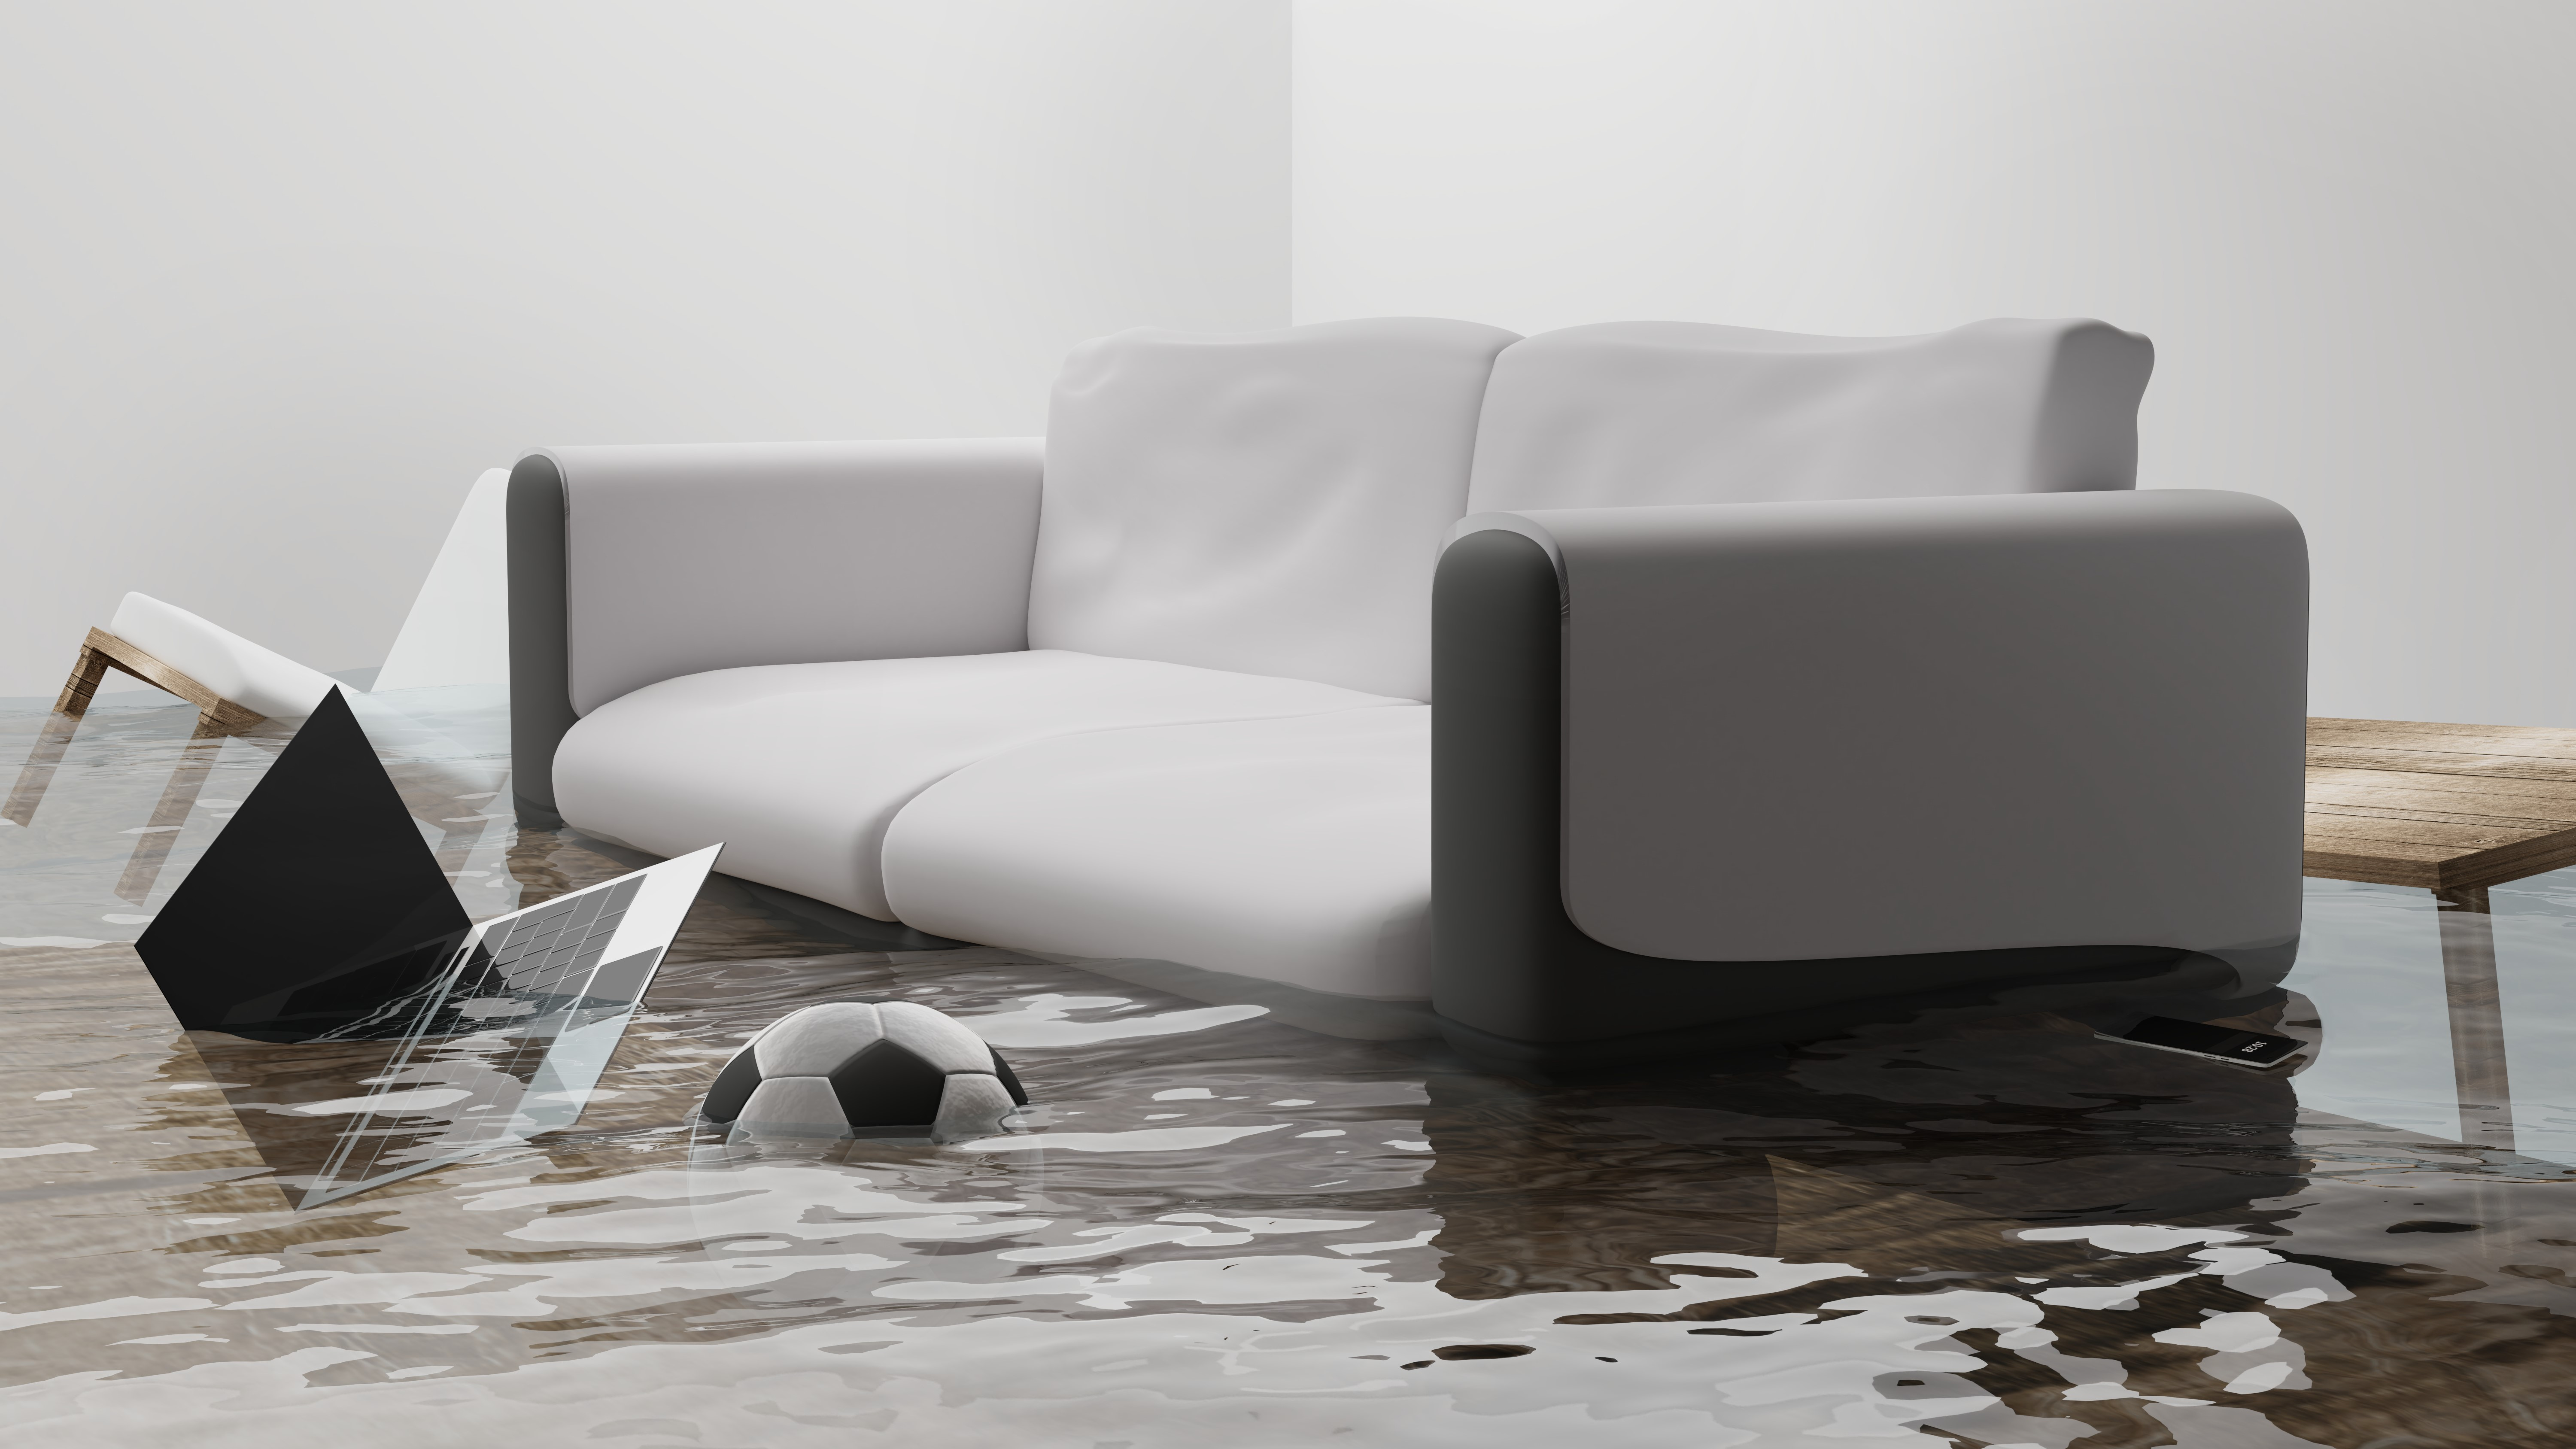 APEG Flood: Is this in your client's Risk Management